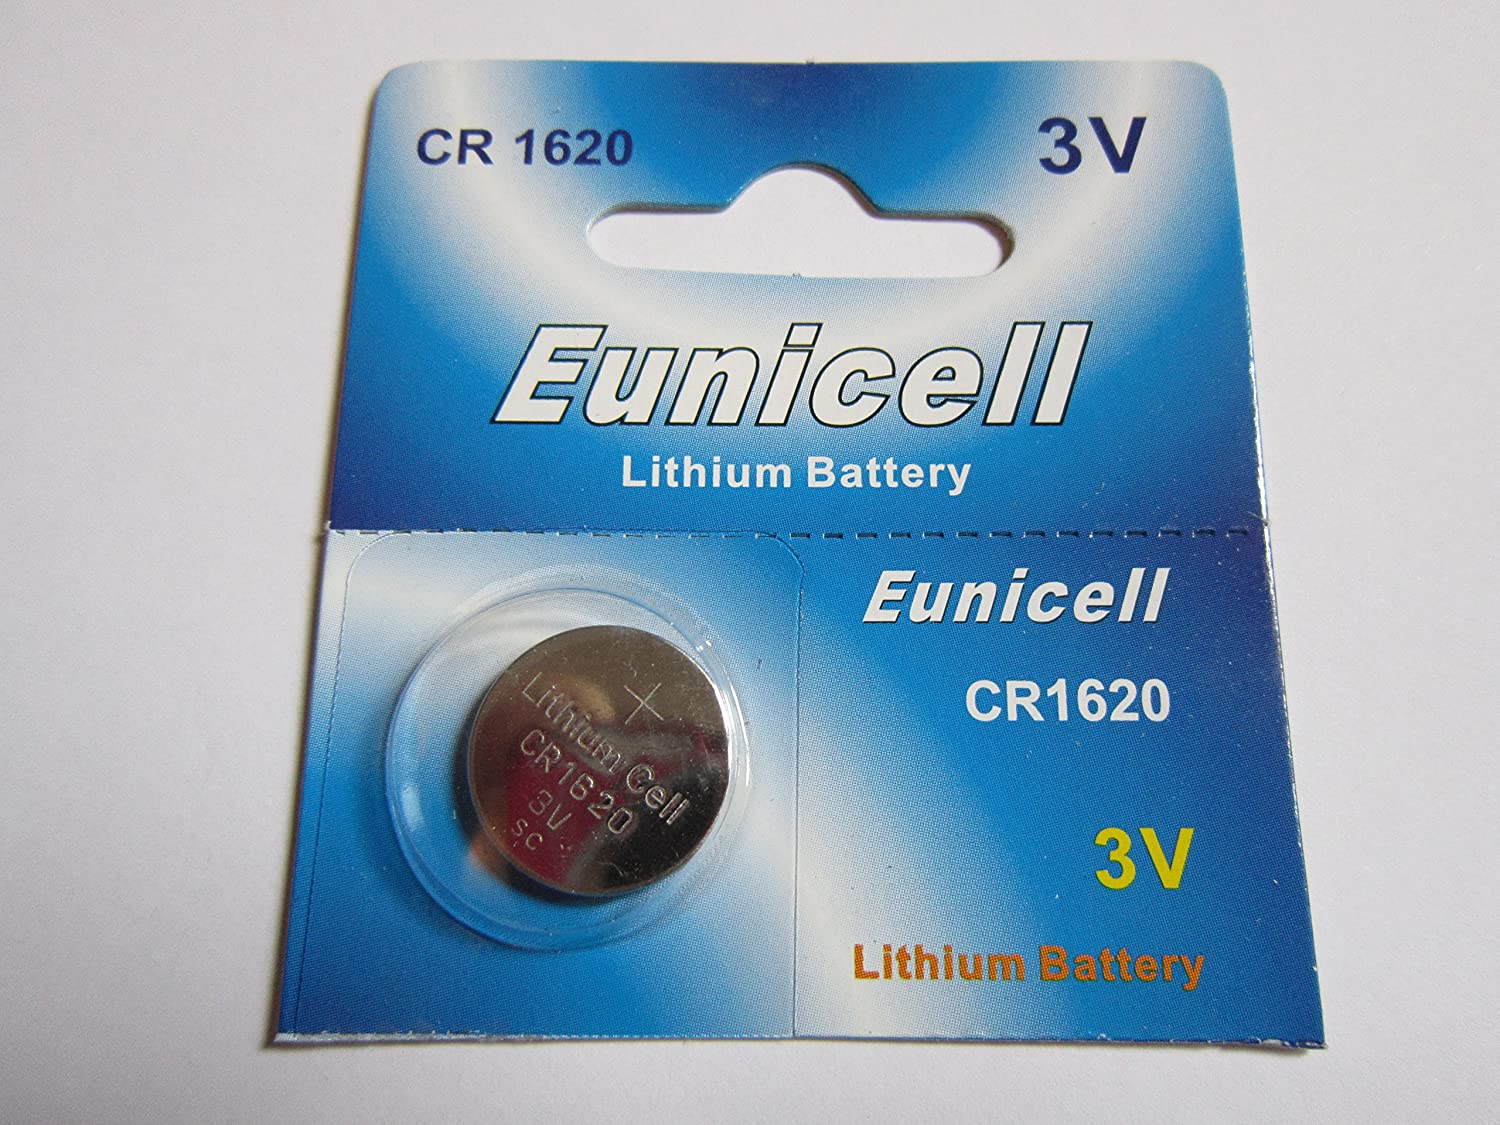 1 Pcs CR1620 CR 1620 - 3V Eunicell Lithium Button Cell Battery Batteries - BRAND NEW IN FACTORY PACKAGING